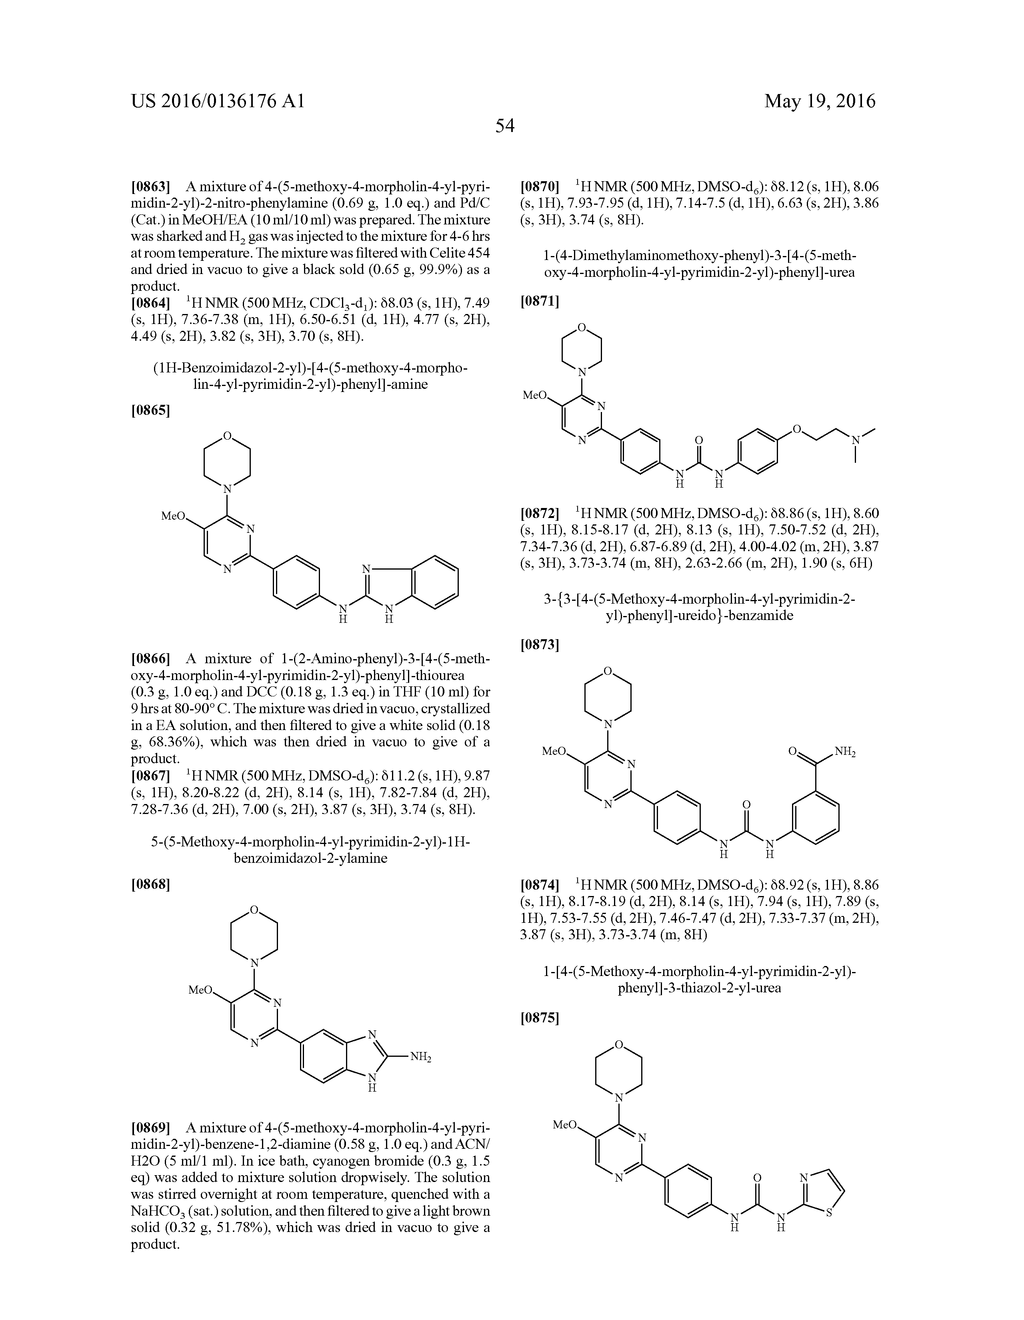 NOVEL PYRIMIDINE COMPOUNDS AS mTOR AND PI3K INHIBITORS - diagram, schematic, and image 55